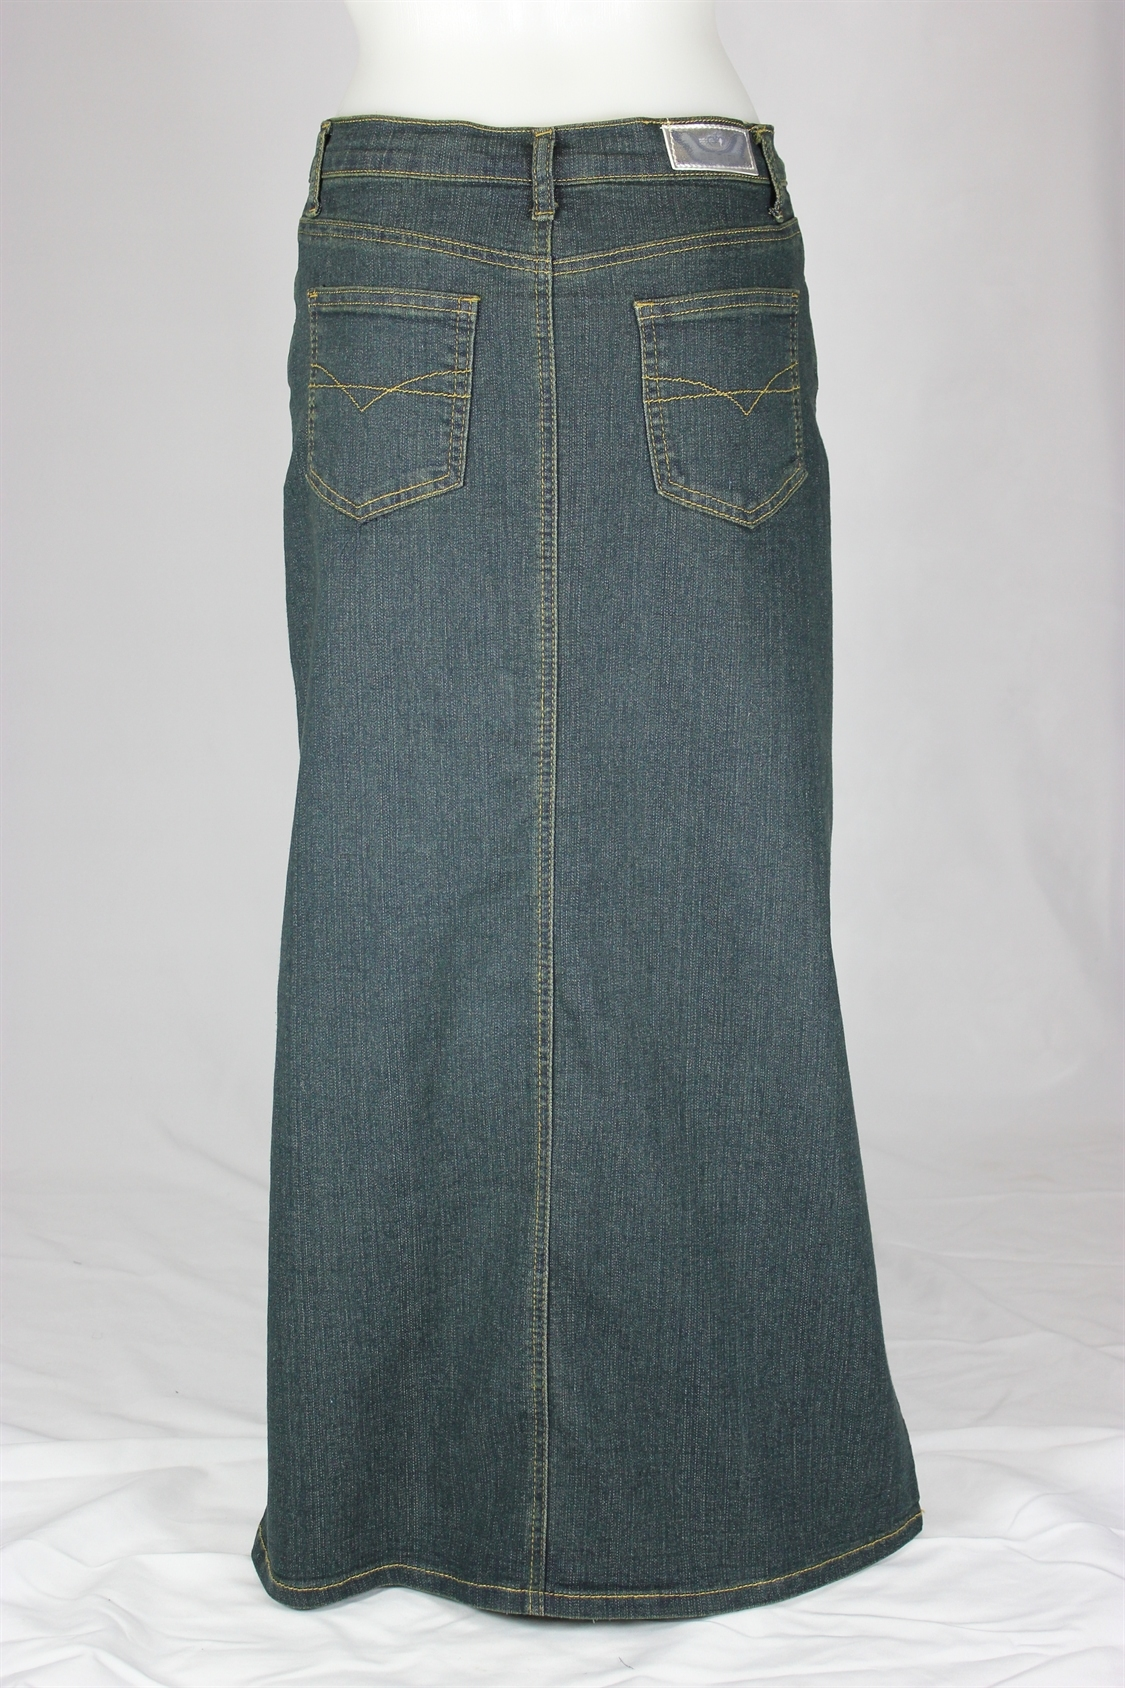 The Straight Denim Skirt is an easy piece to wear and style back with your favourite T-shirt or sweater. Made from % cotton, this staple item is durable and lightweight. The front waistline features an Elk logo tack button, zip and small darts to add a touch of volume for comfort.